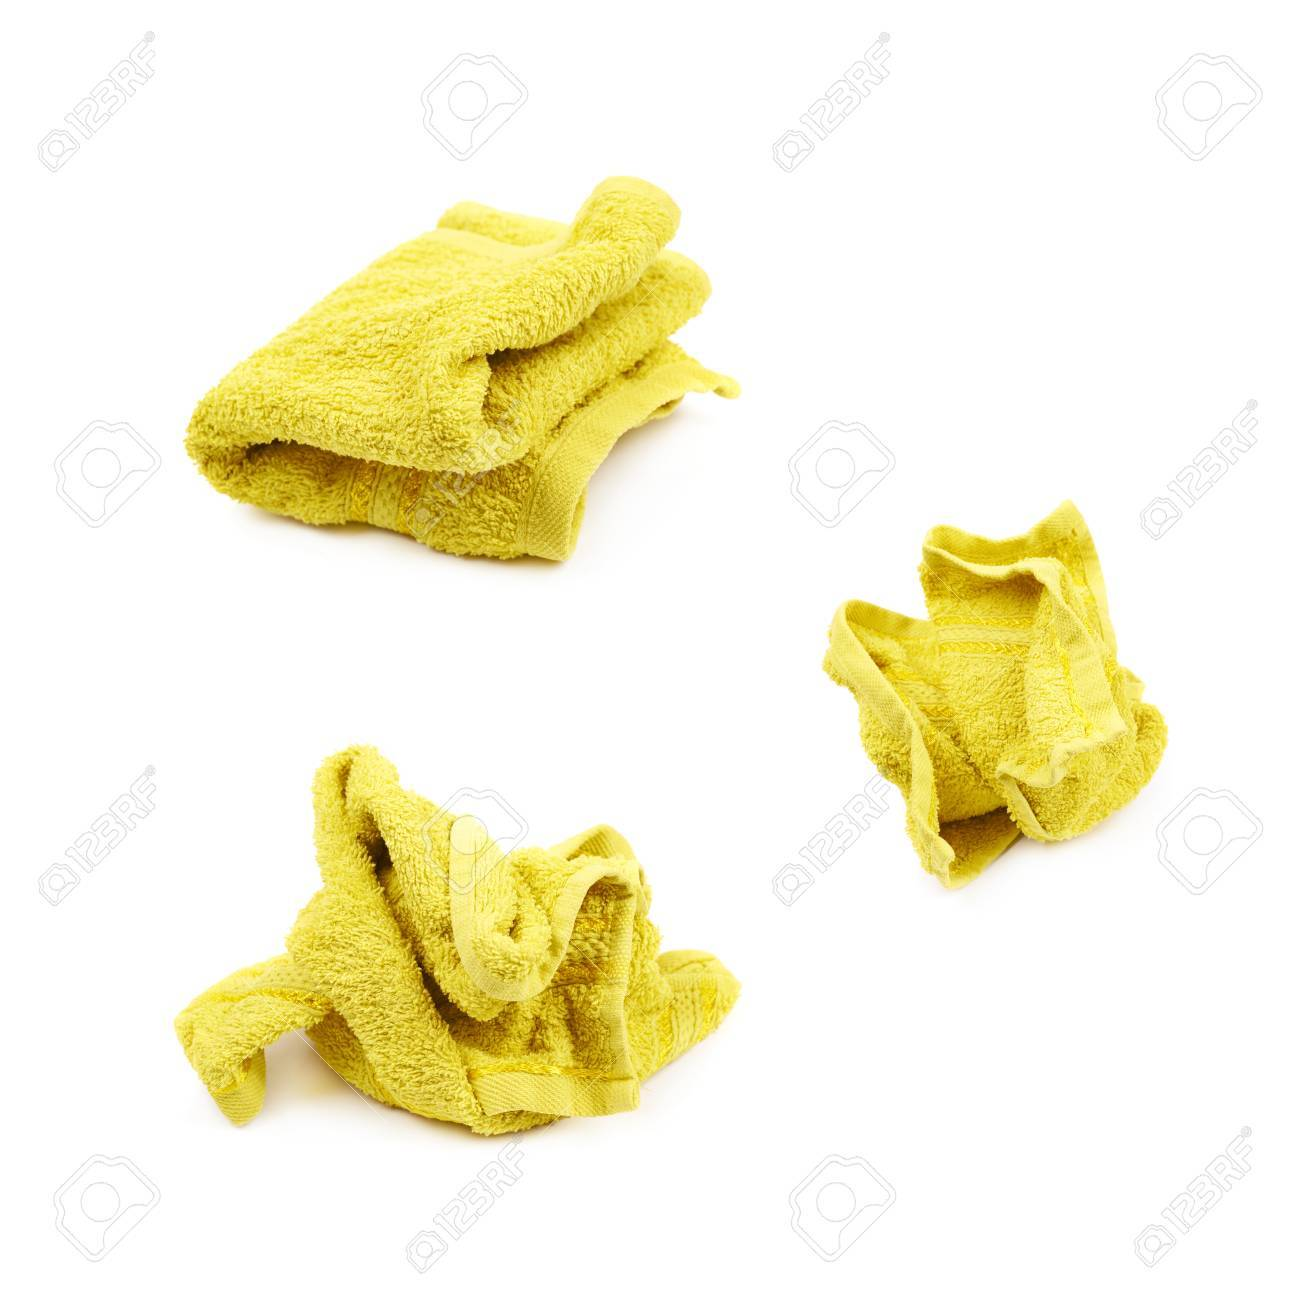 6d0defcf394ae0 Crumpled Yellow Kitchen Towel Isolated Over The White Background ...